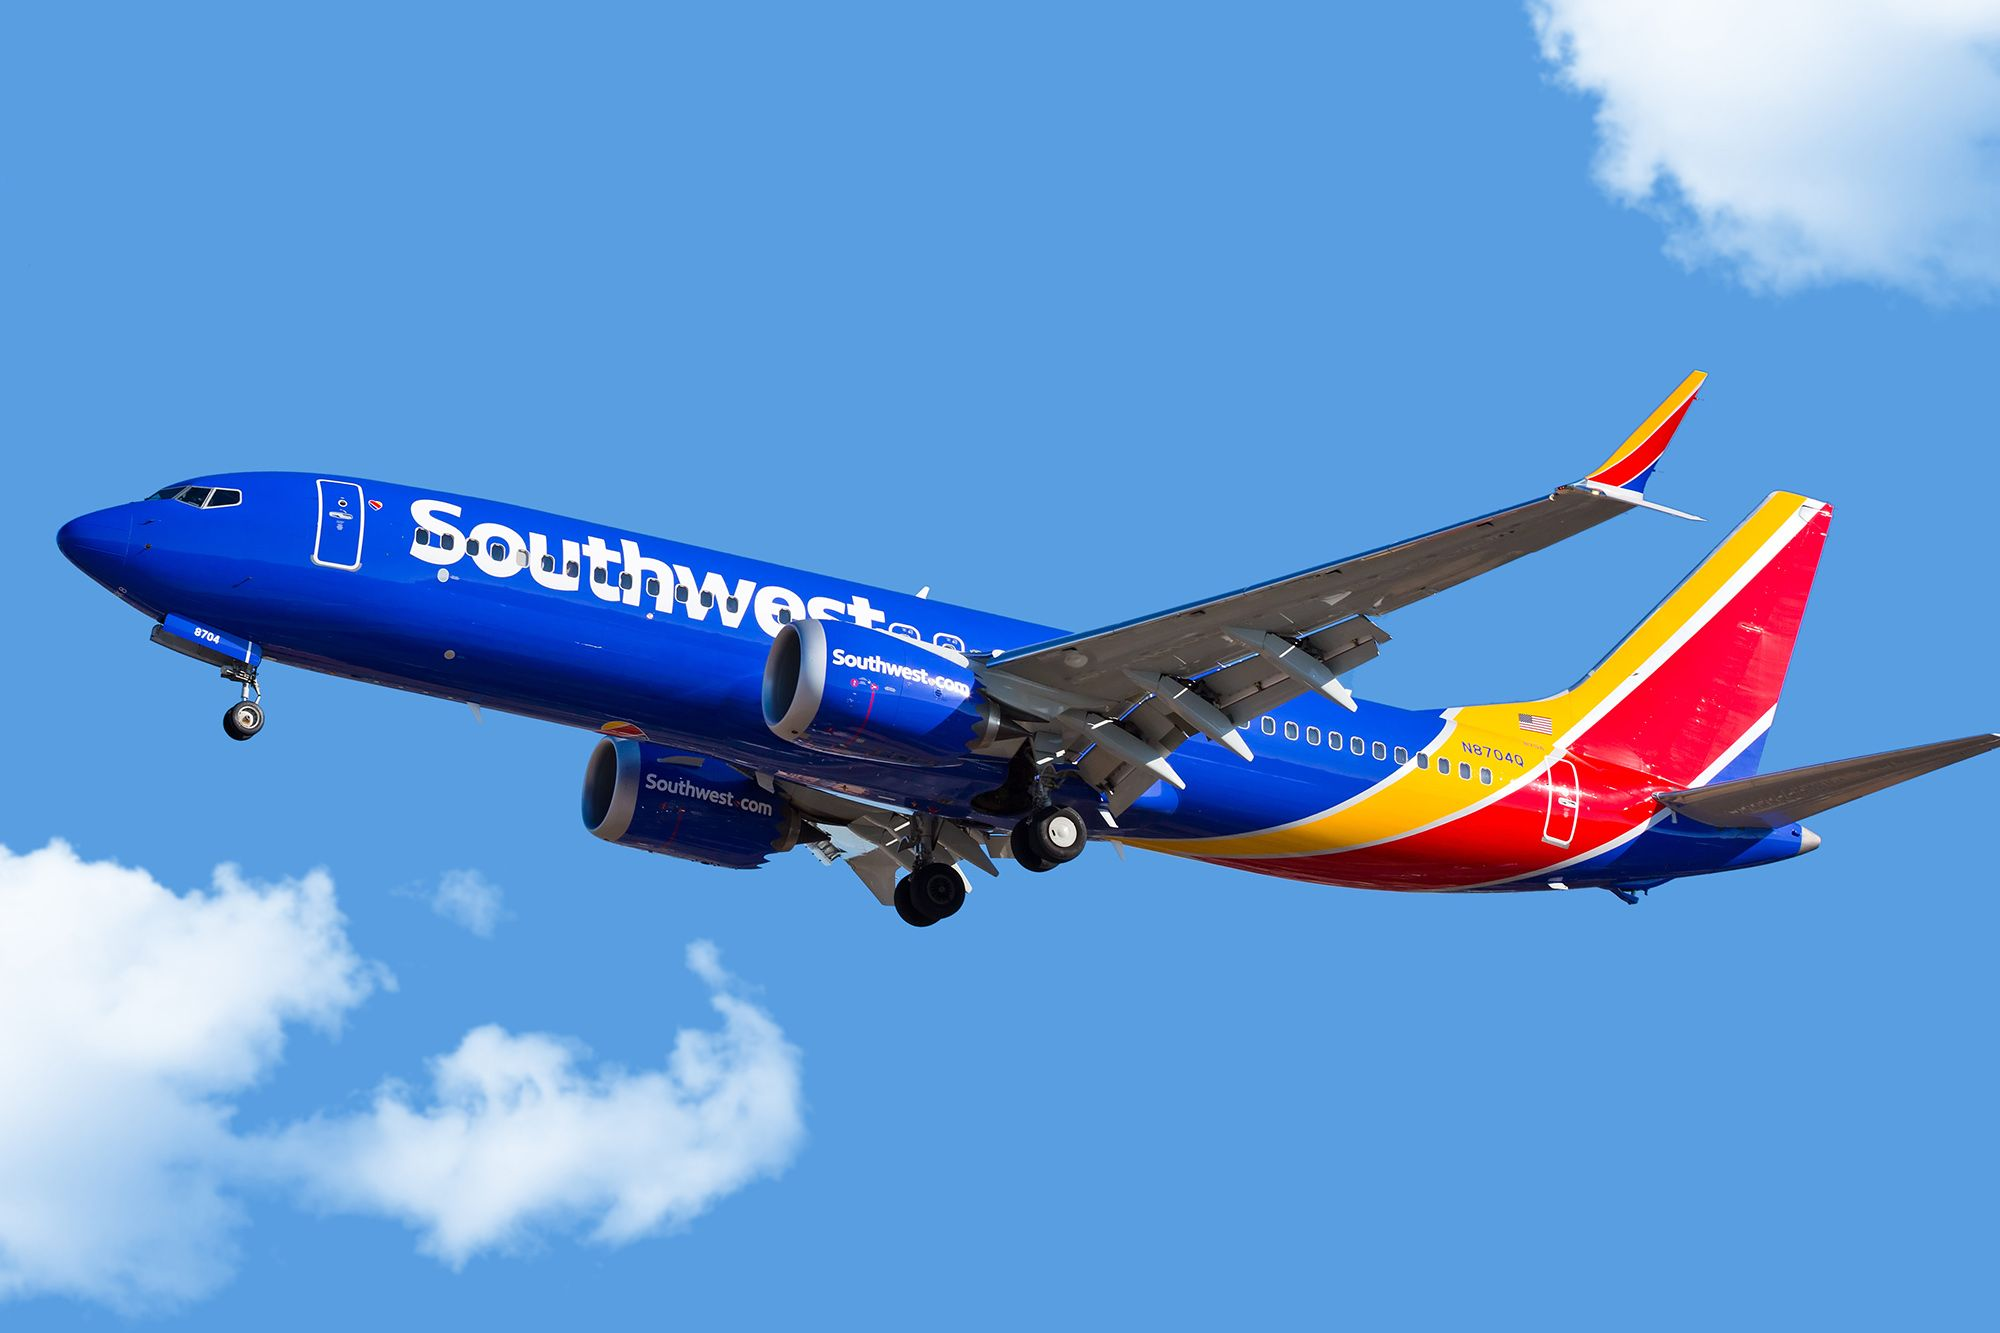 Southwest Airlines Says Mass Cancellations Cost $75 Million, Posts $446 Million Profit for Third Quarter